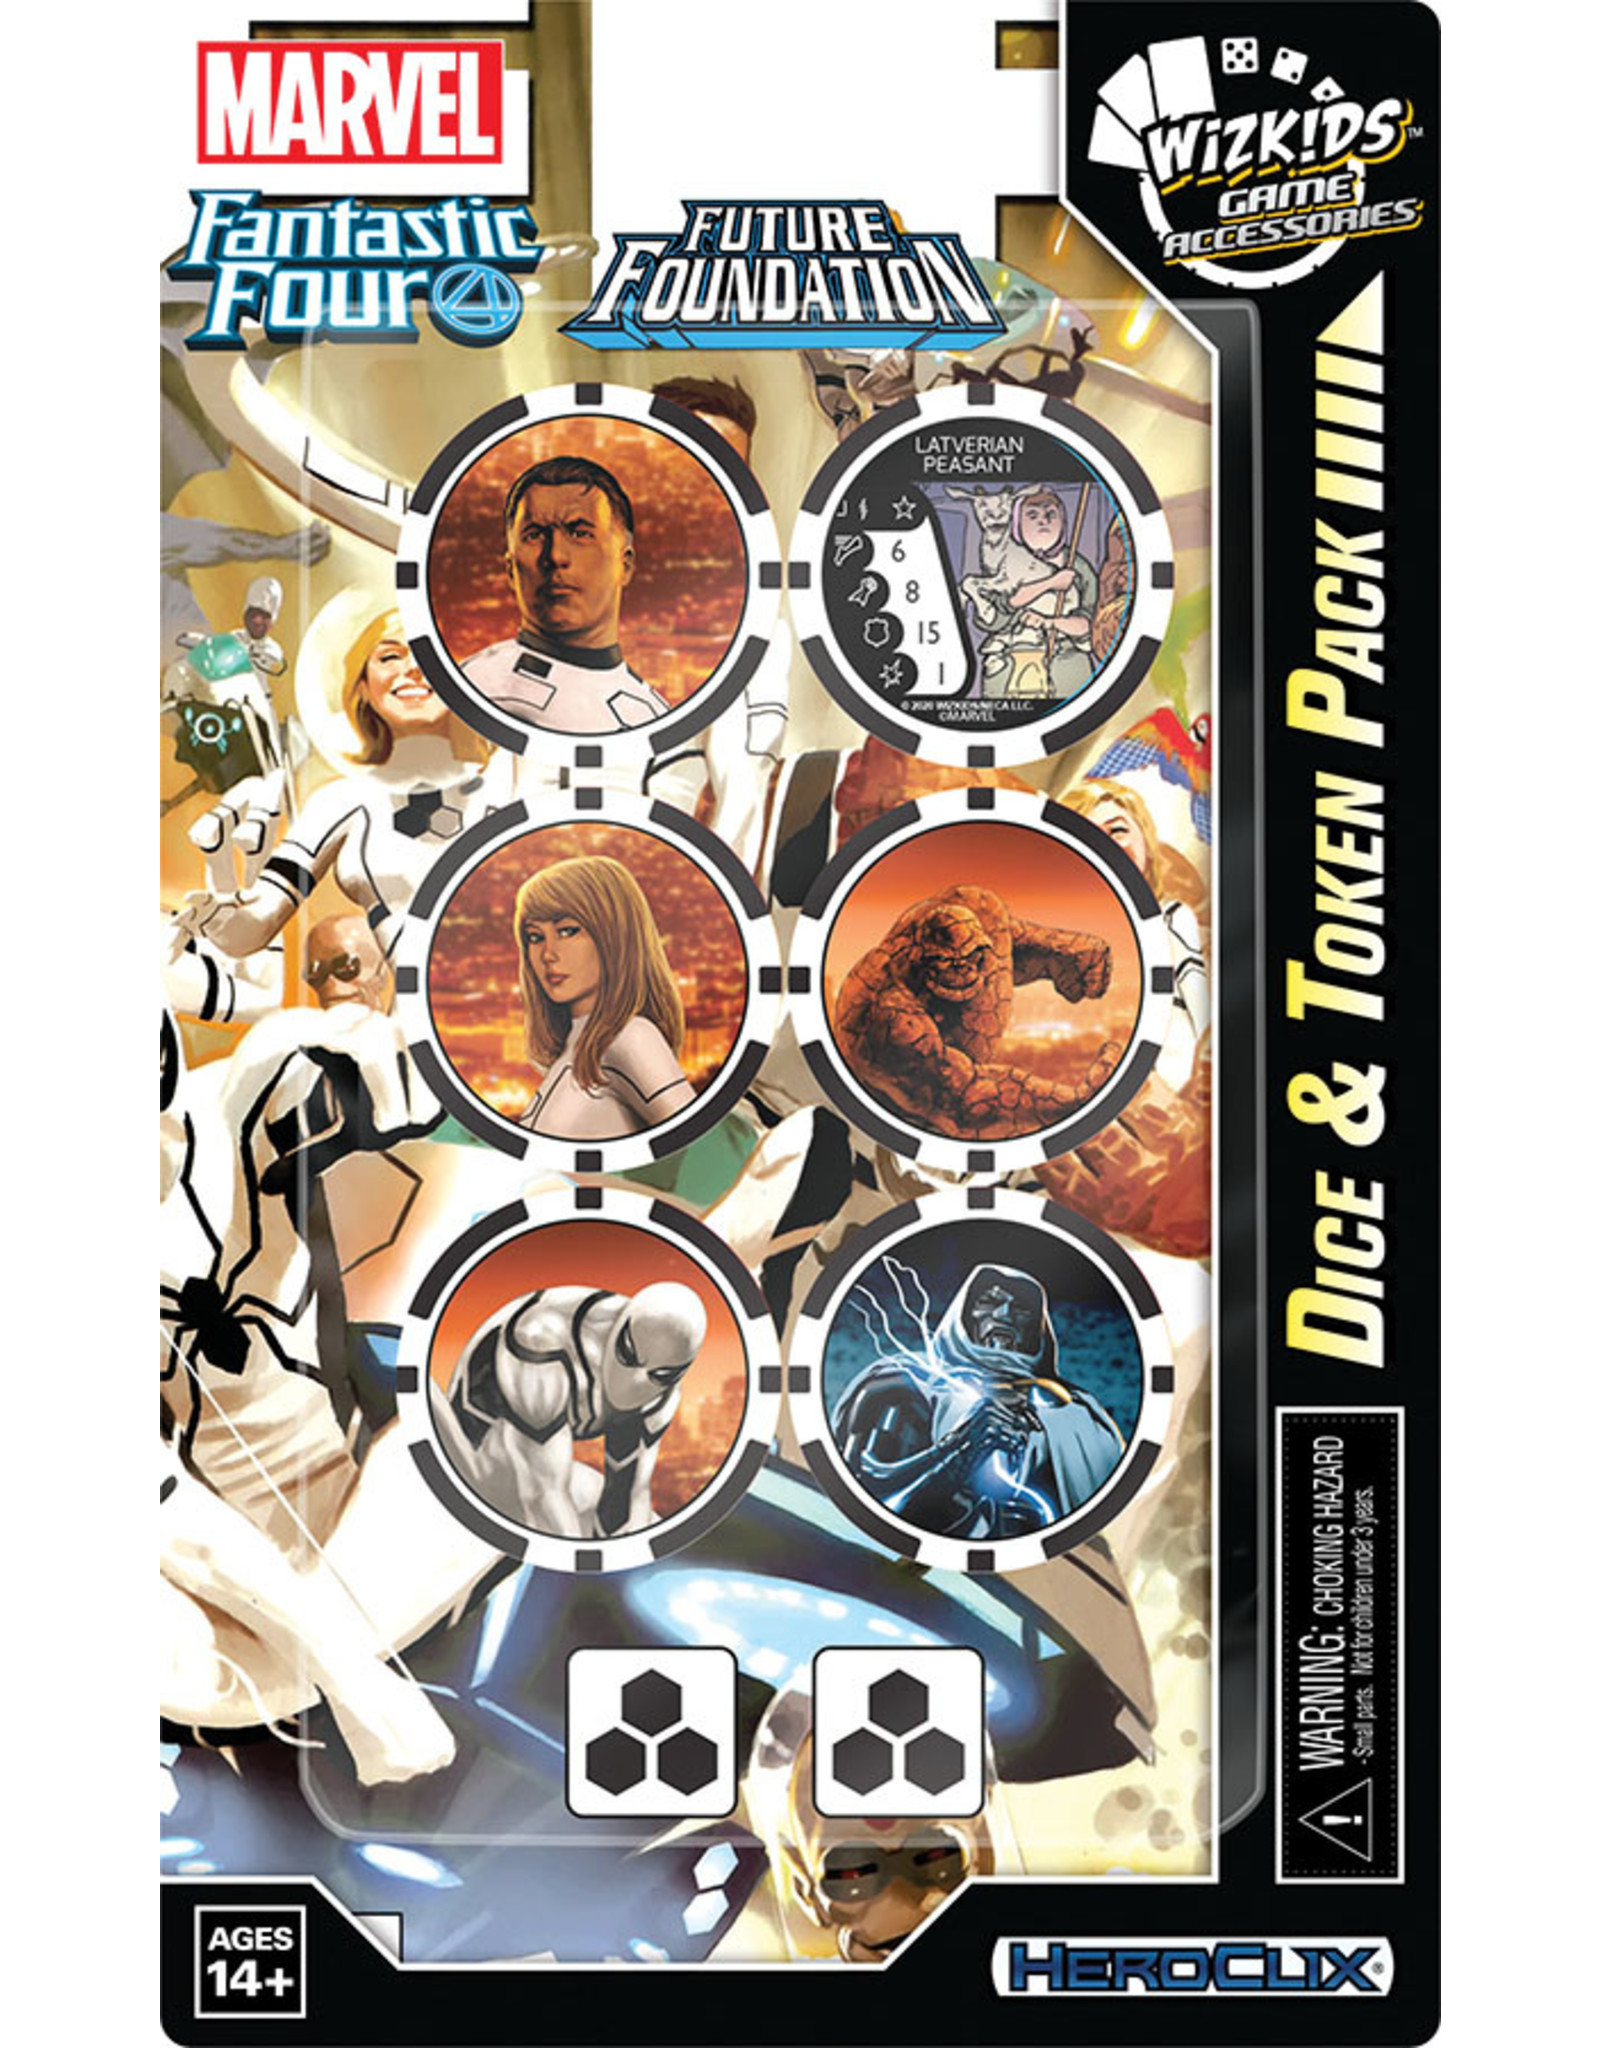 Wizkids Fantastic Four Future Foundation Dice and Token Pack - Marvel Heroclix